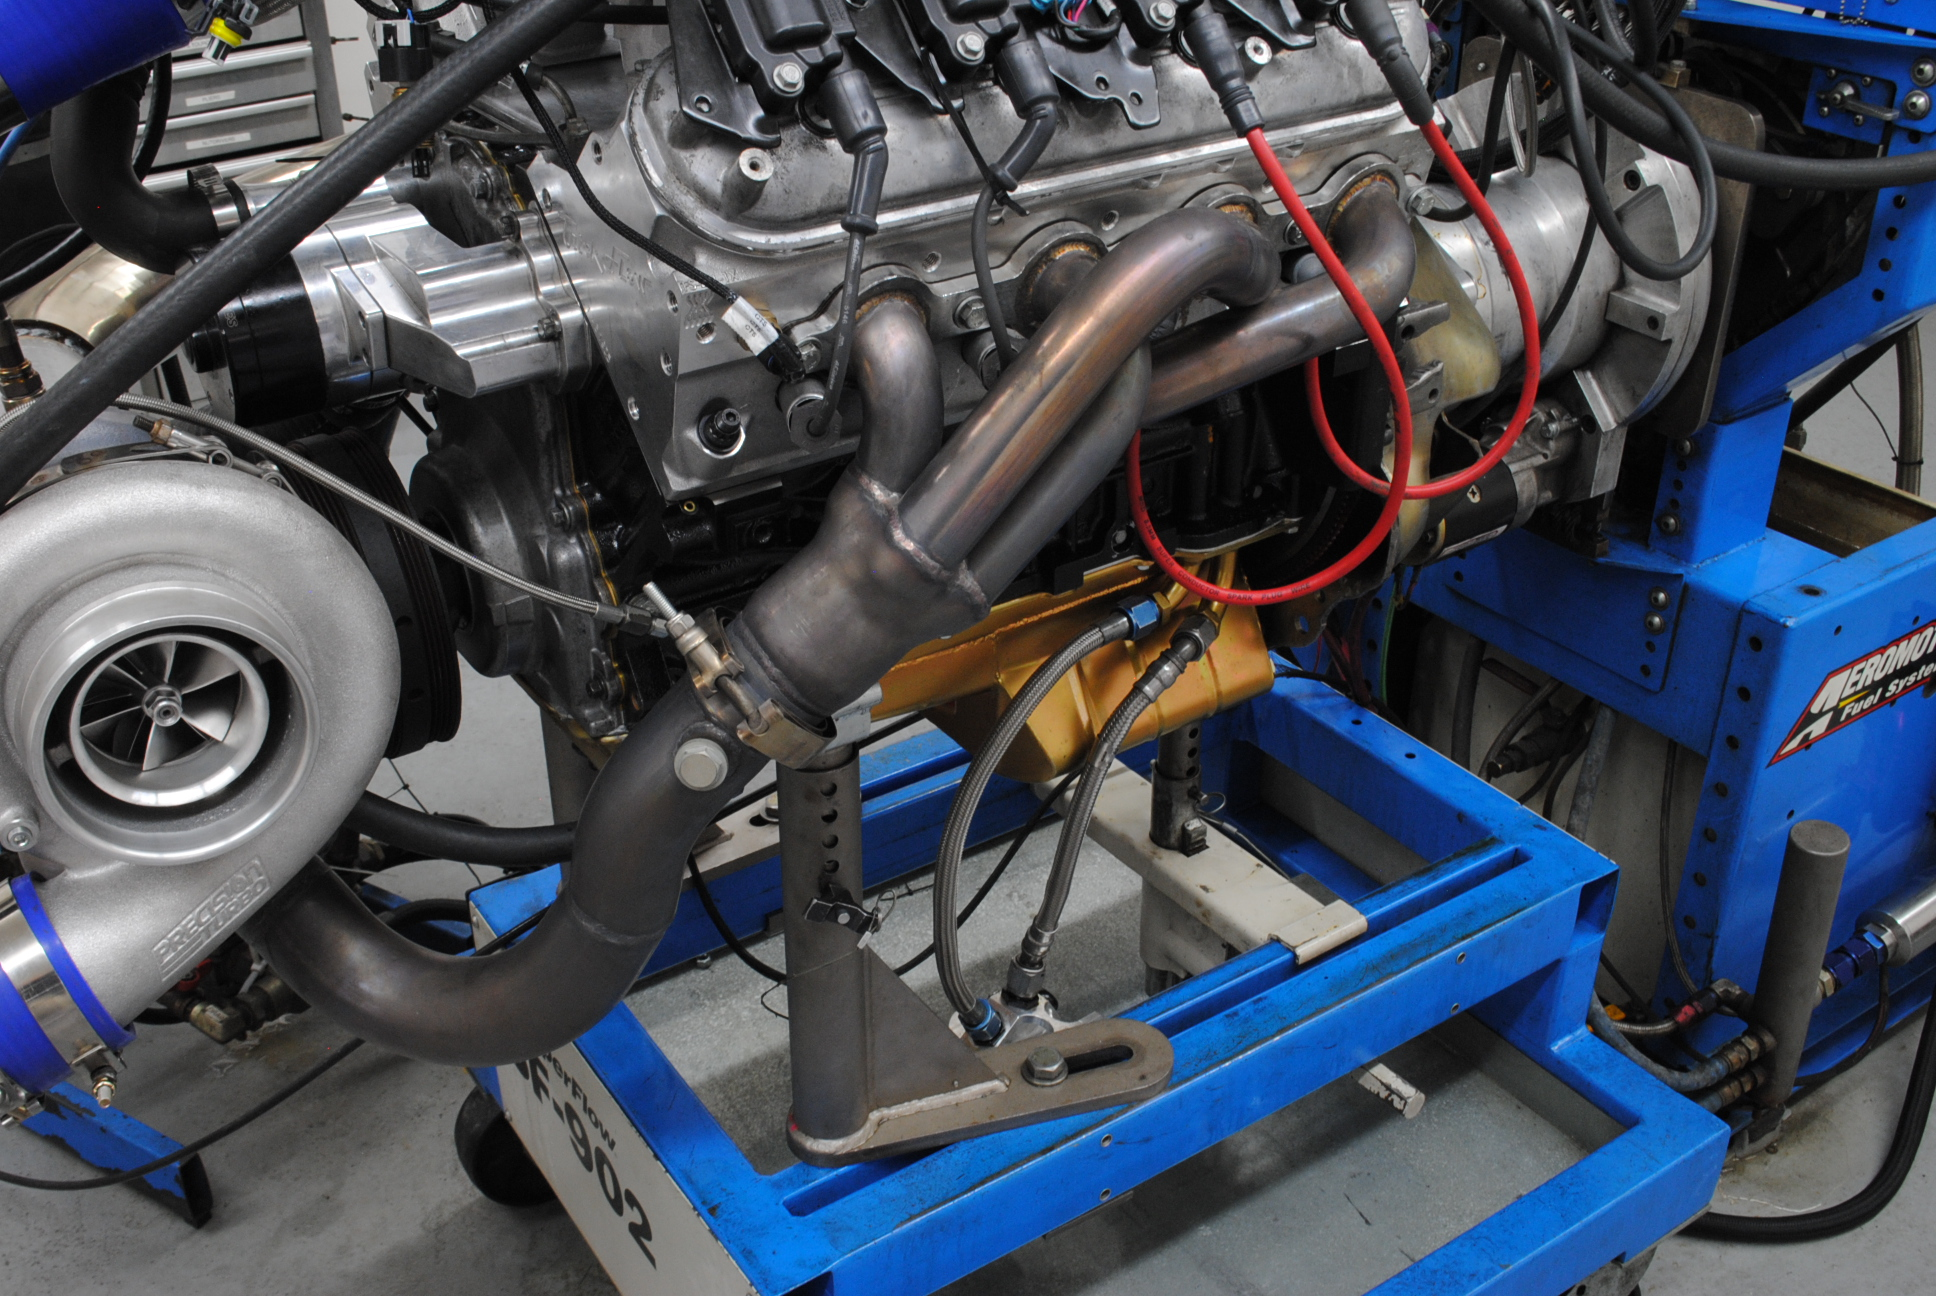 We replaced the headers with dedicated exhaust manifolds from cxracing the single turbo kit